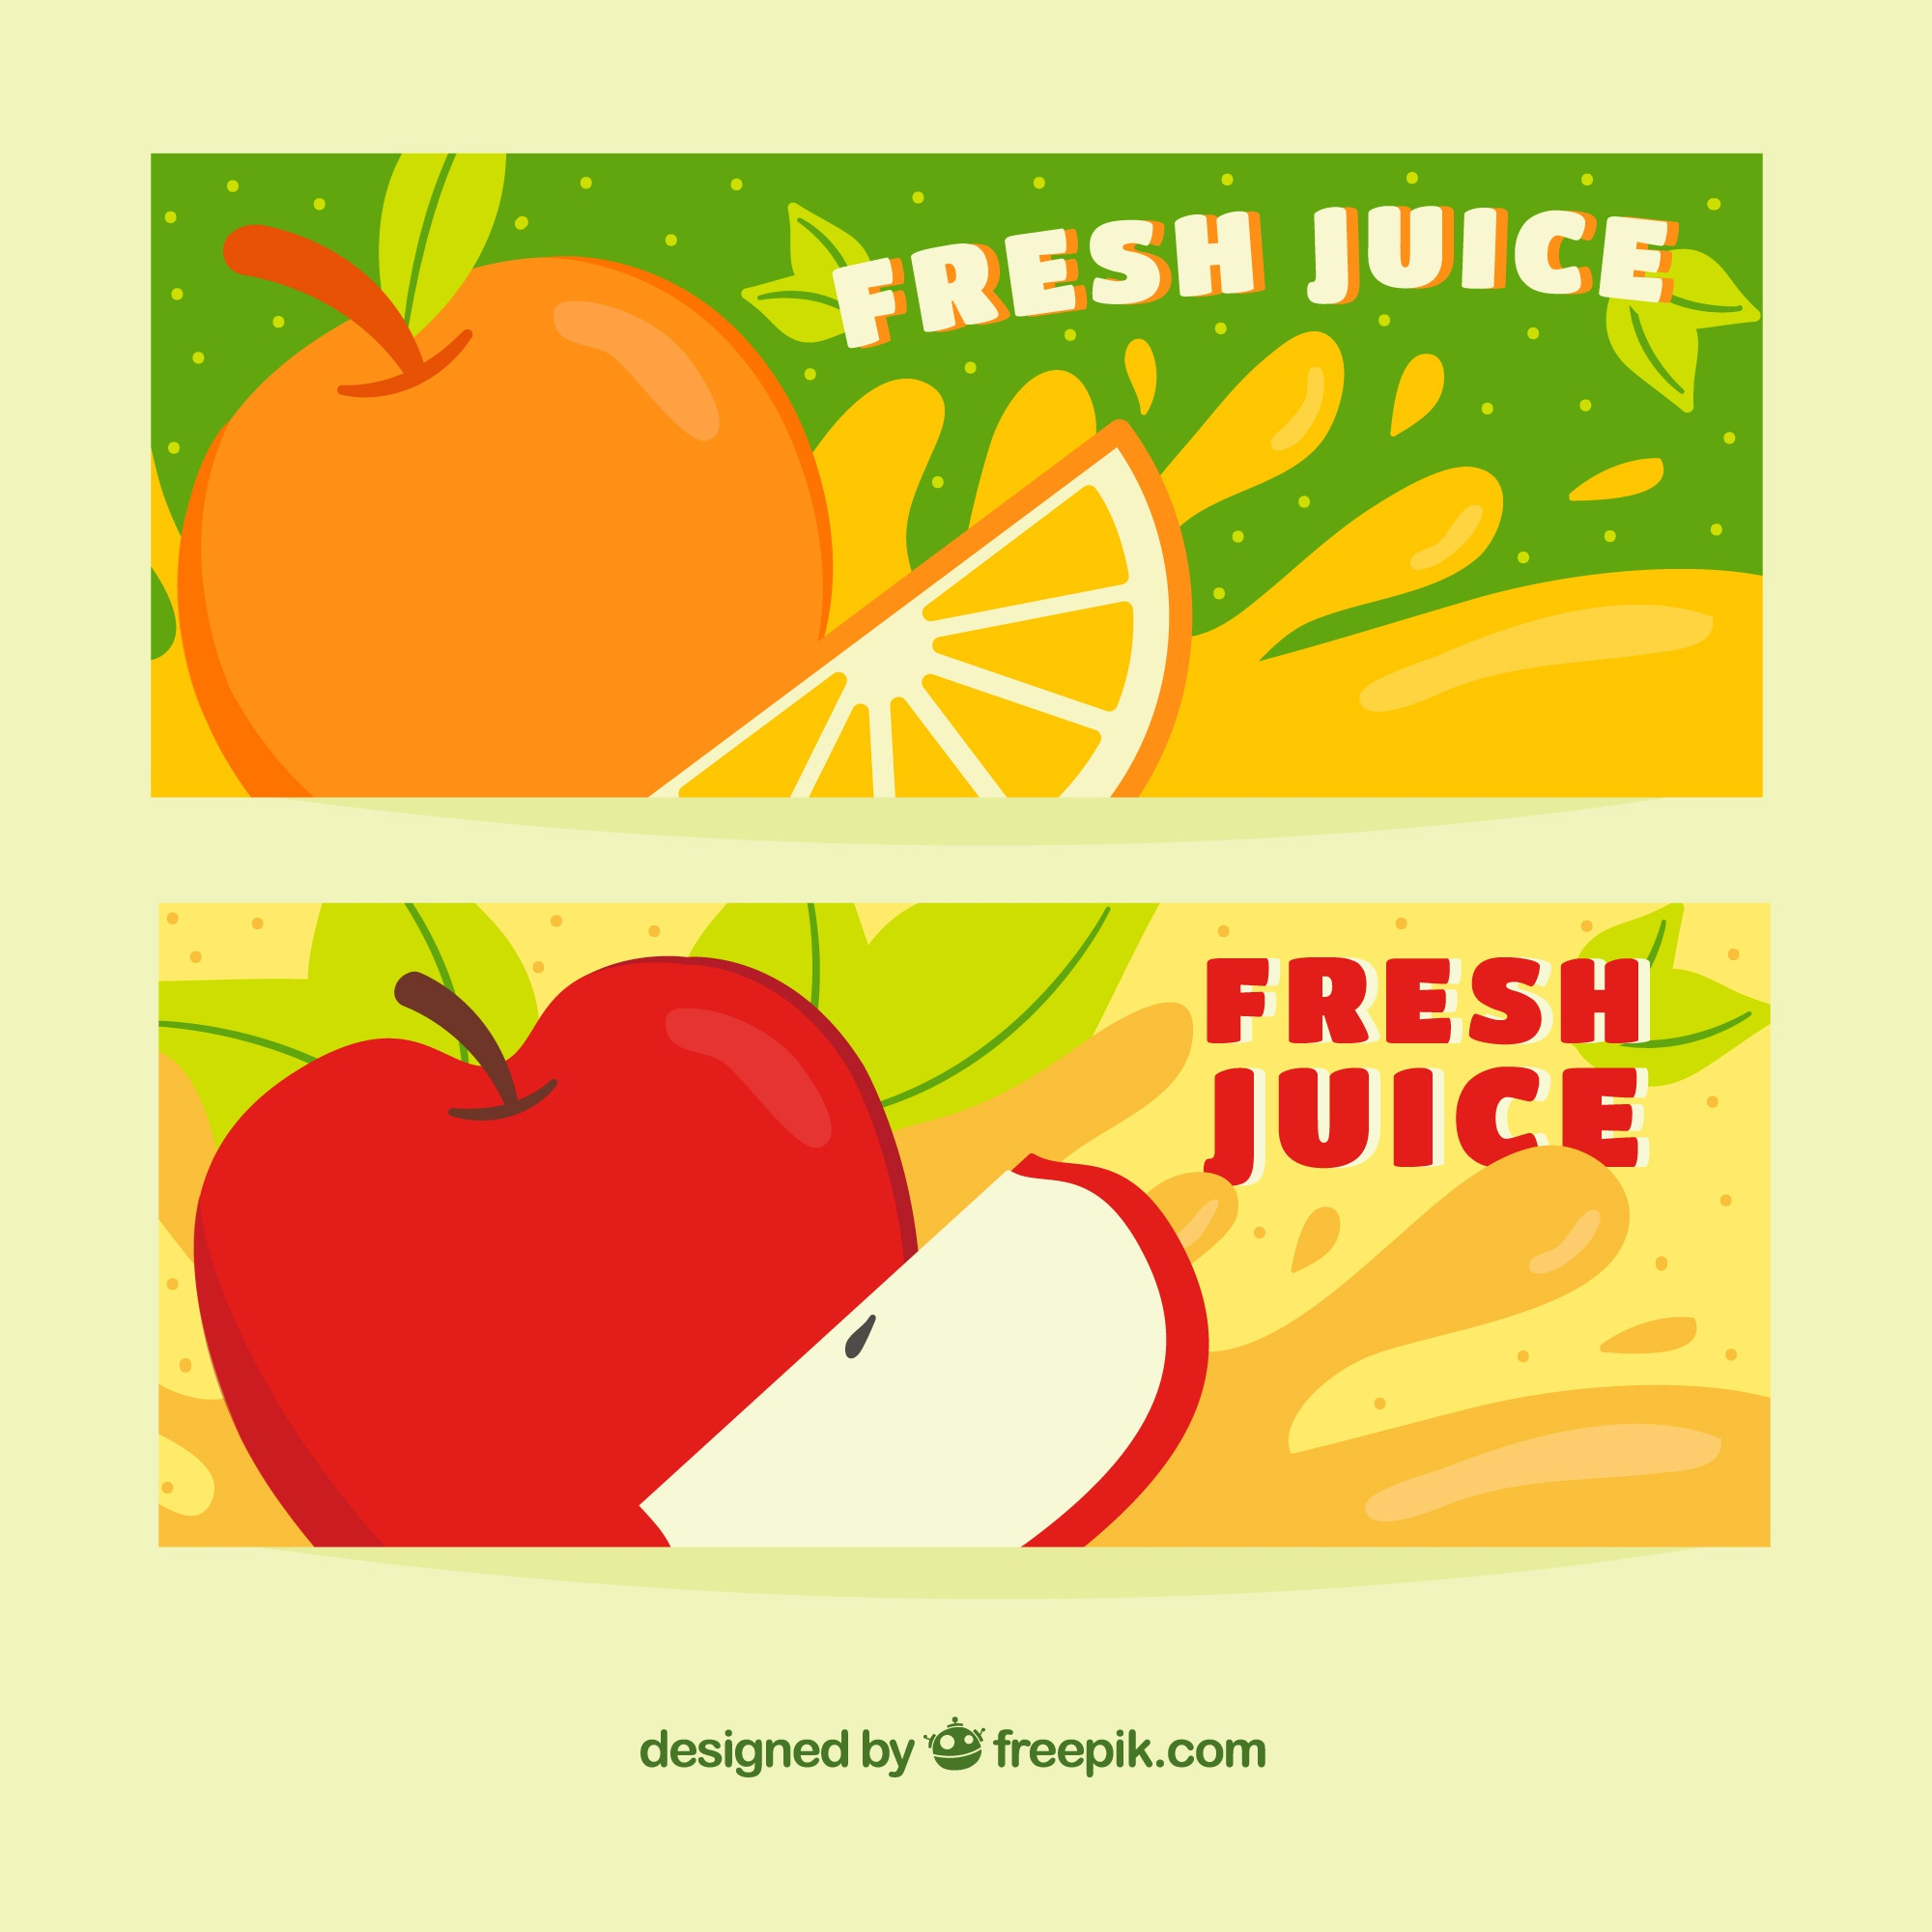 Fruit juice banners with splashes